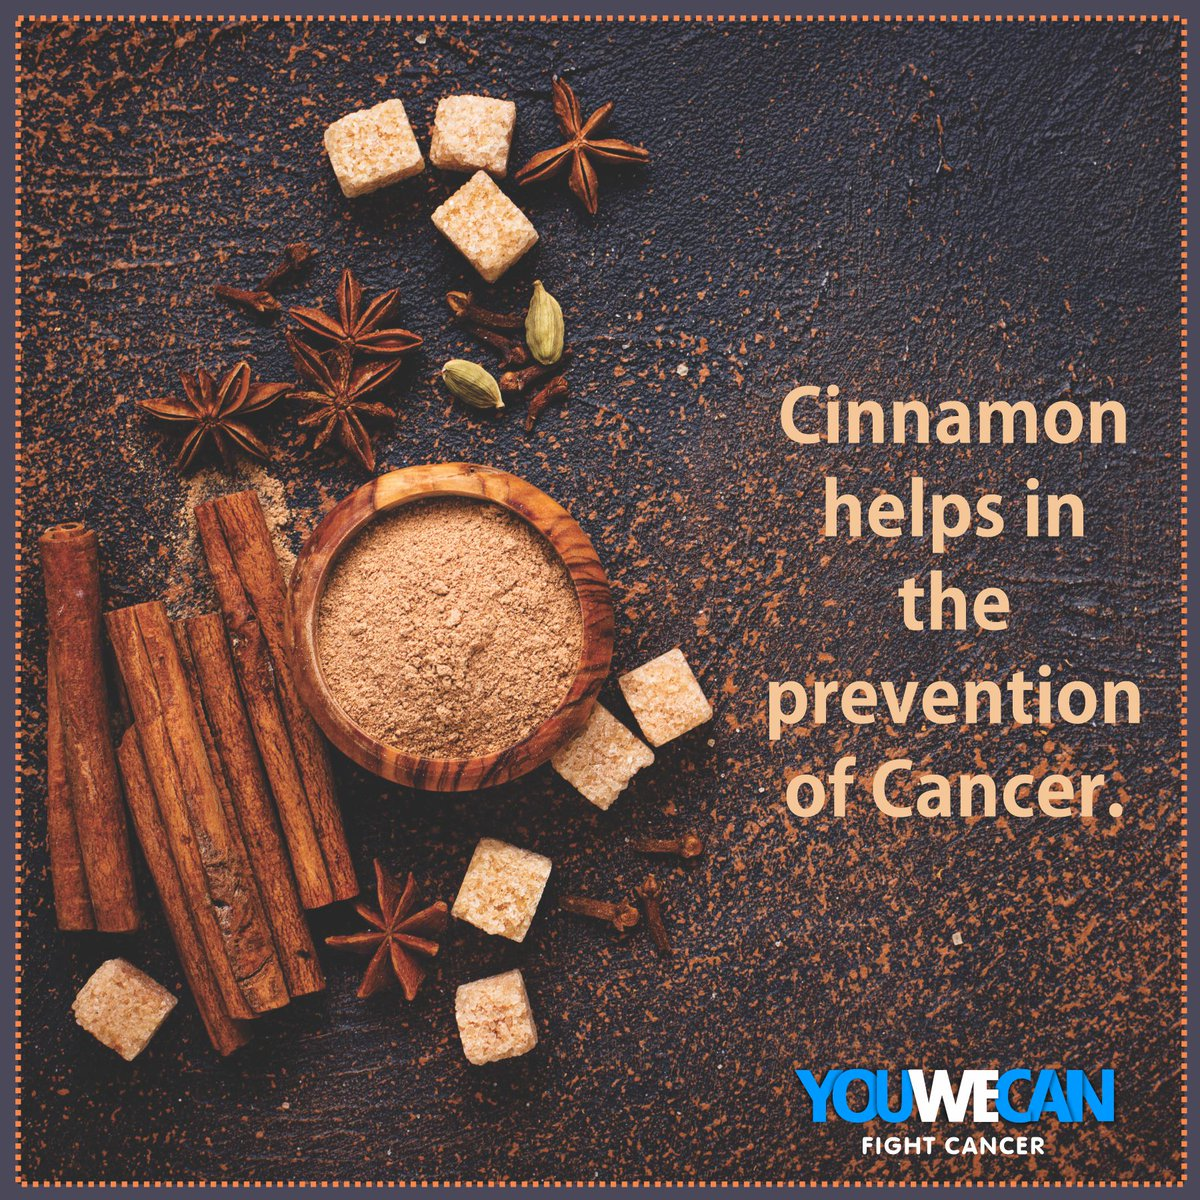 Cinnamon is an age old spice, which is well-known for its health benefits including its ability to reduce blood sugar and inflammation!It reduces the risk of cancer, also helps block the spread of cancer cells. @YUVSTRONG12 @hazelkeech